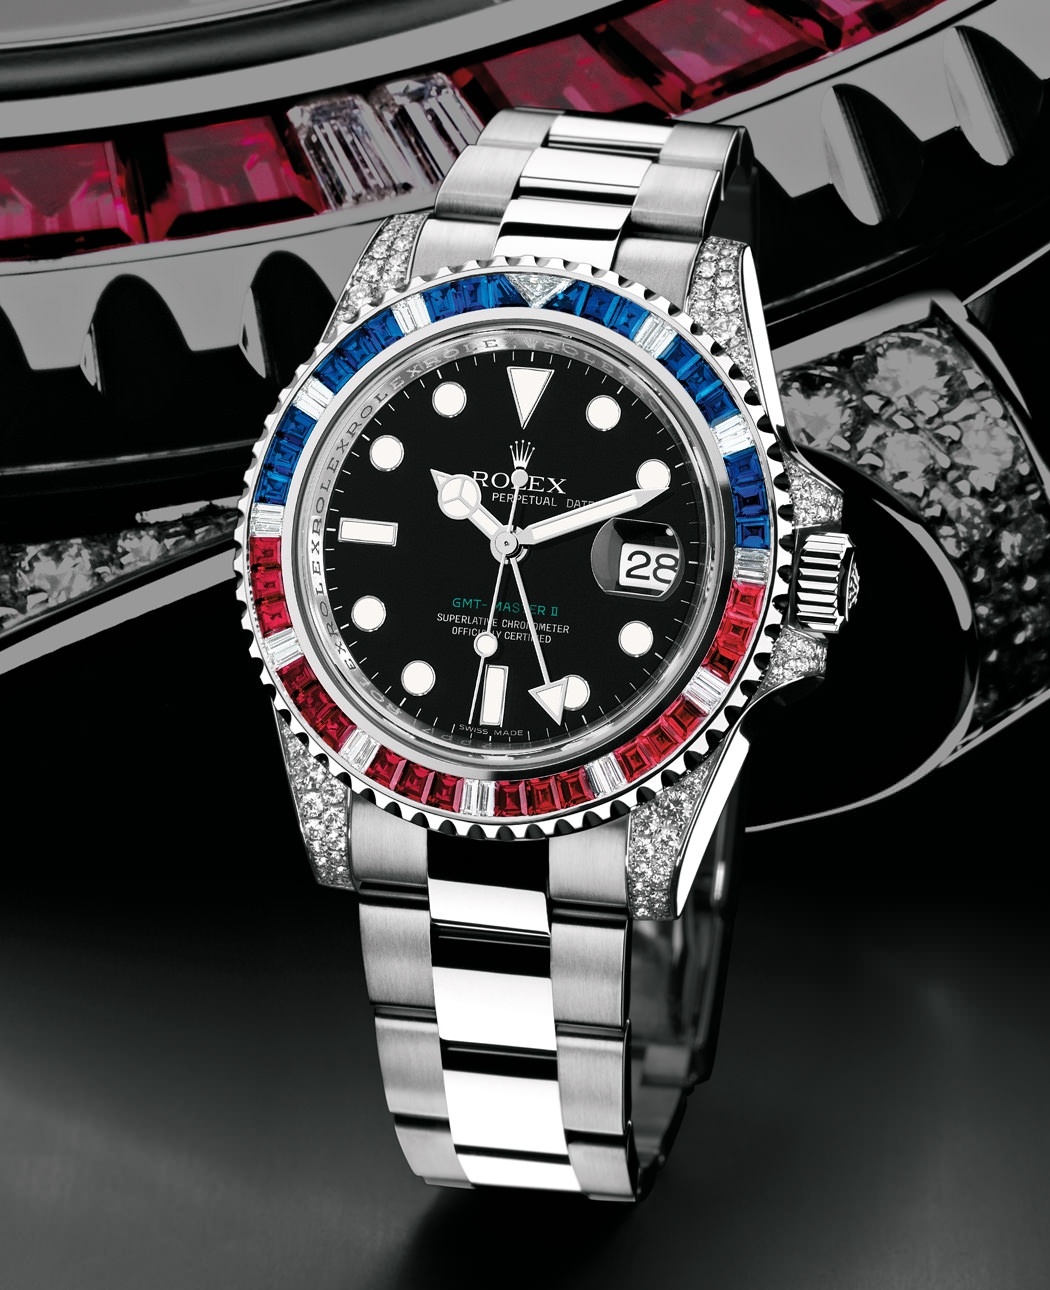 OYSTER PERPETUAL GMT-MASTER II by Rolex